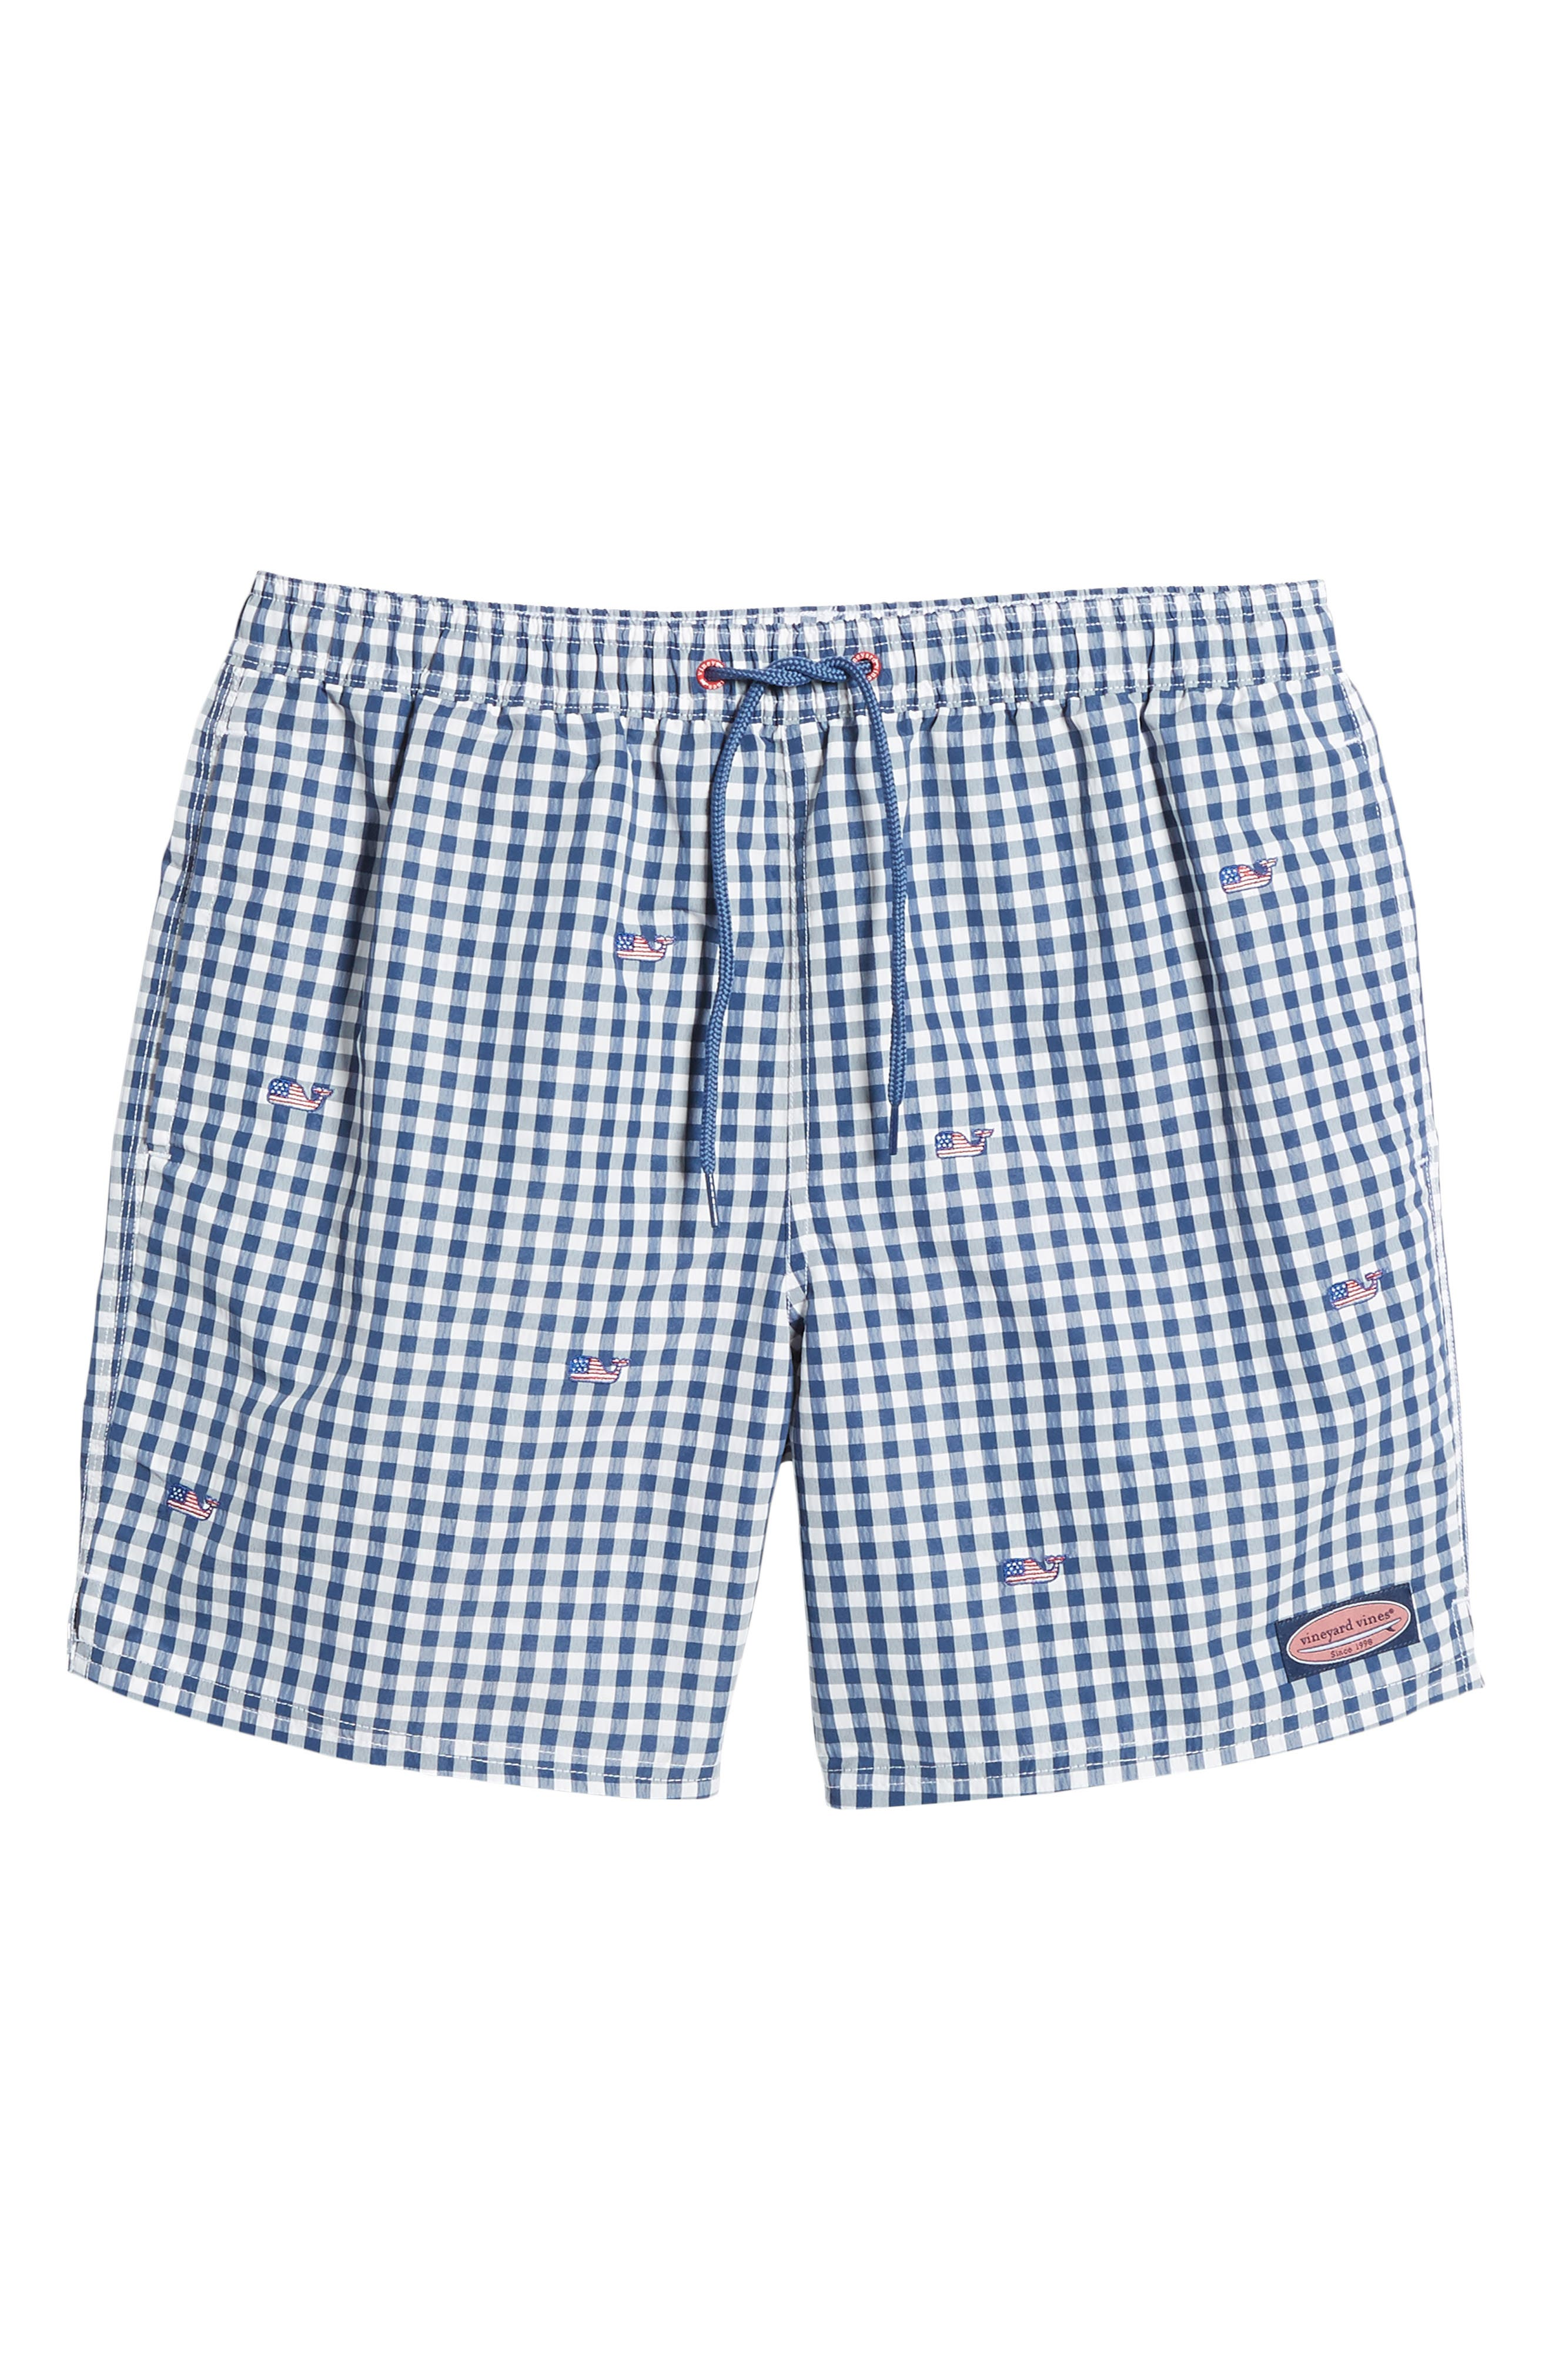 Chappy Flag Whale Embroidered Gingham Swim Trunks,                             Alternate thumbnail 6, color,                             461